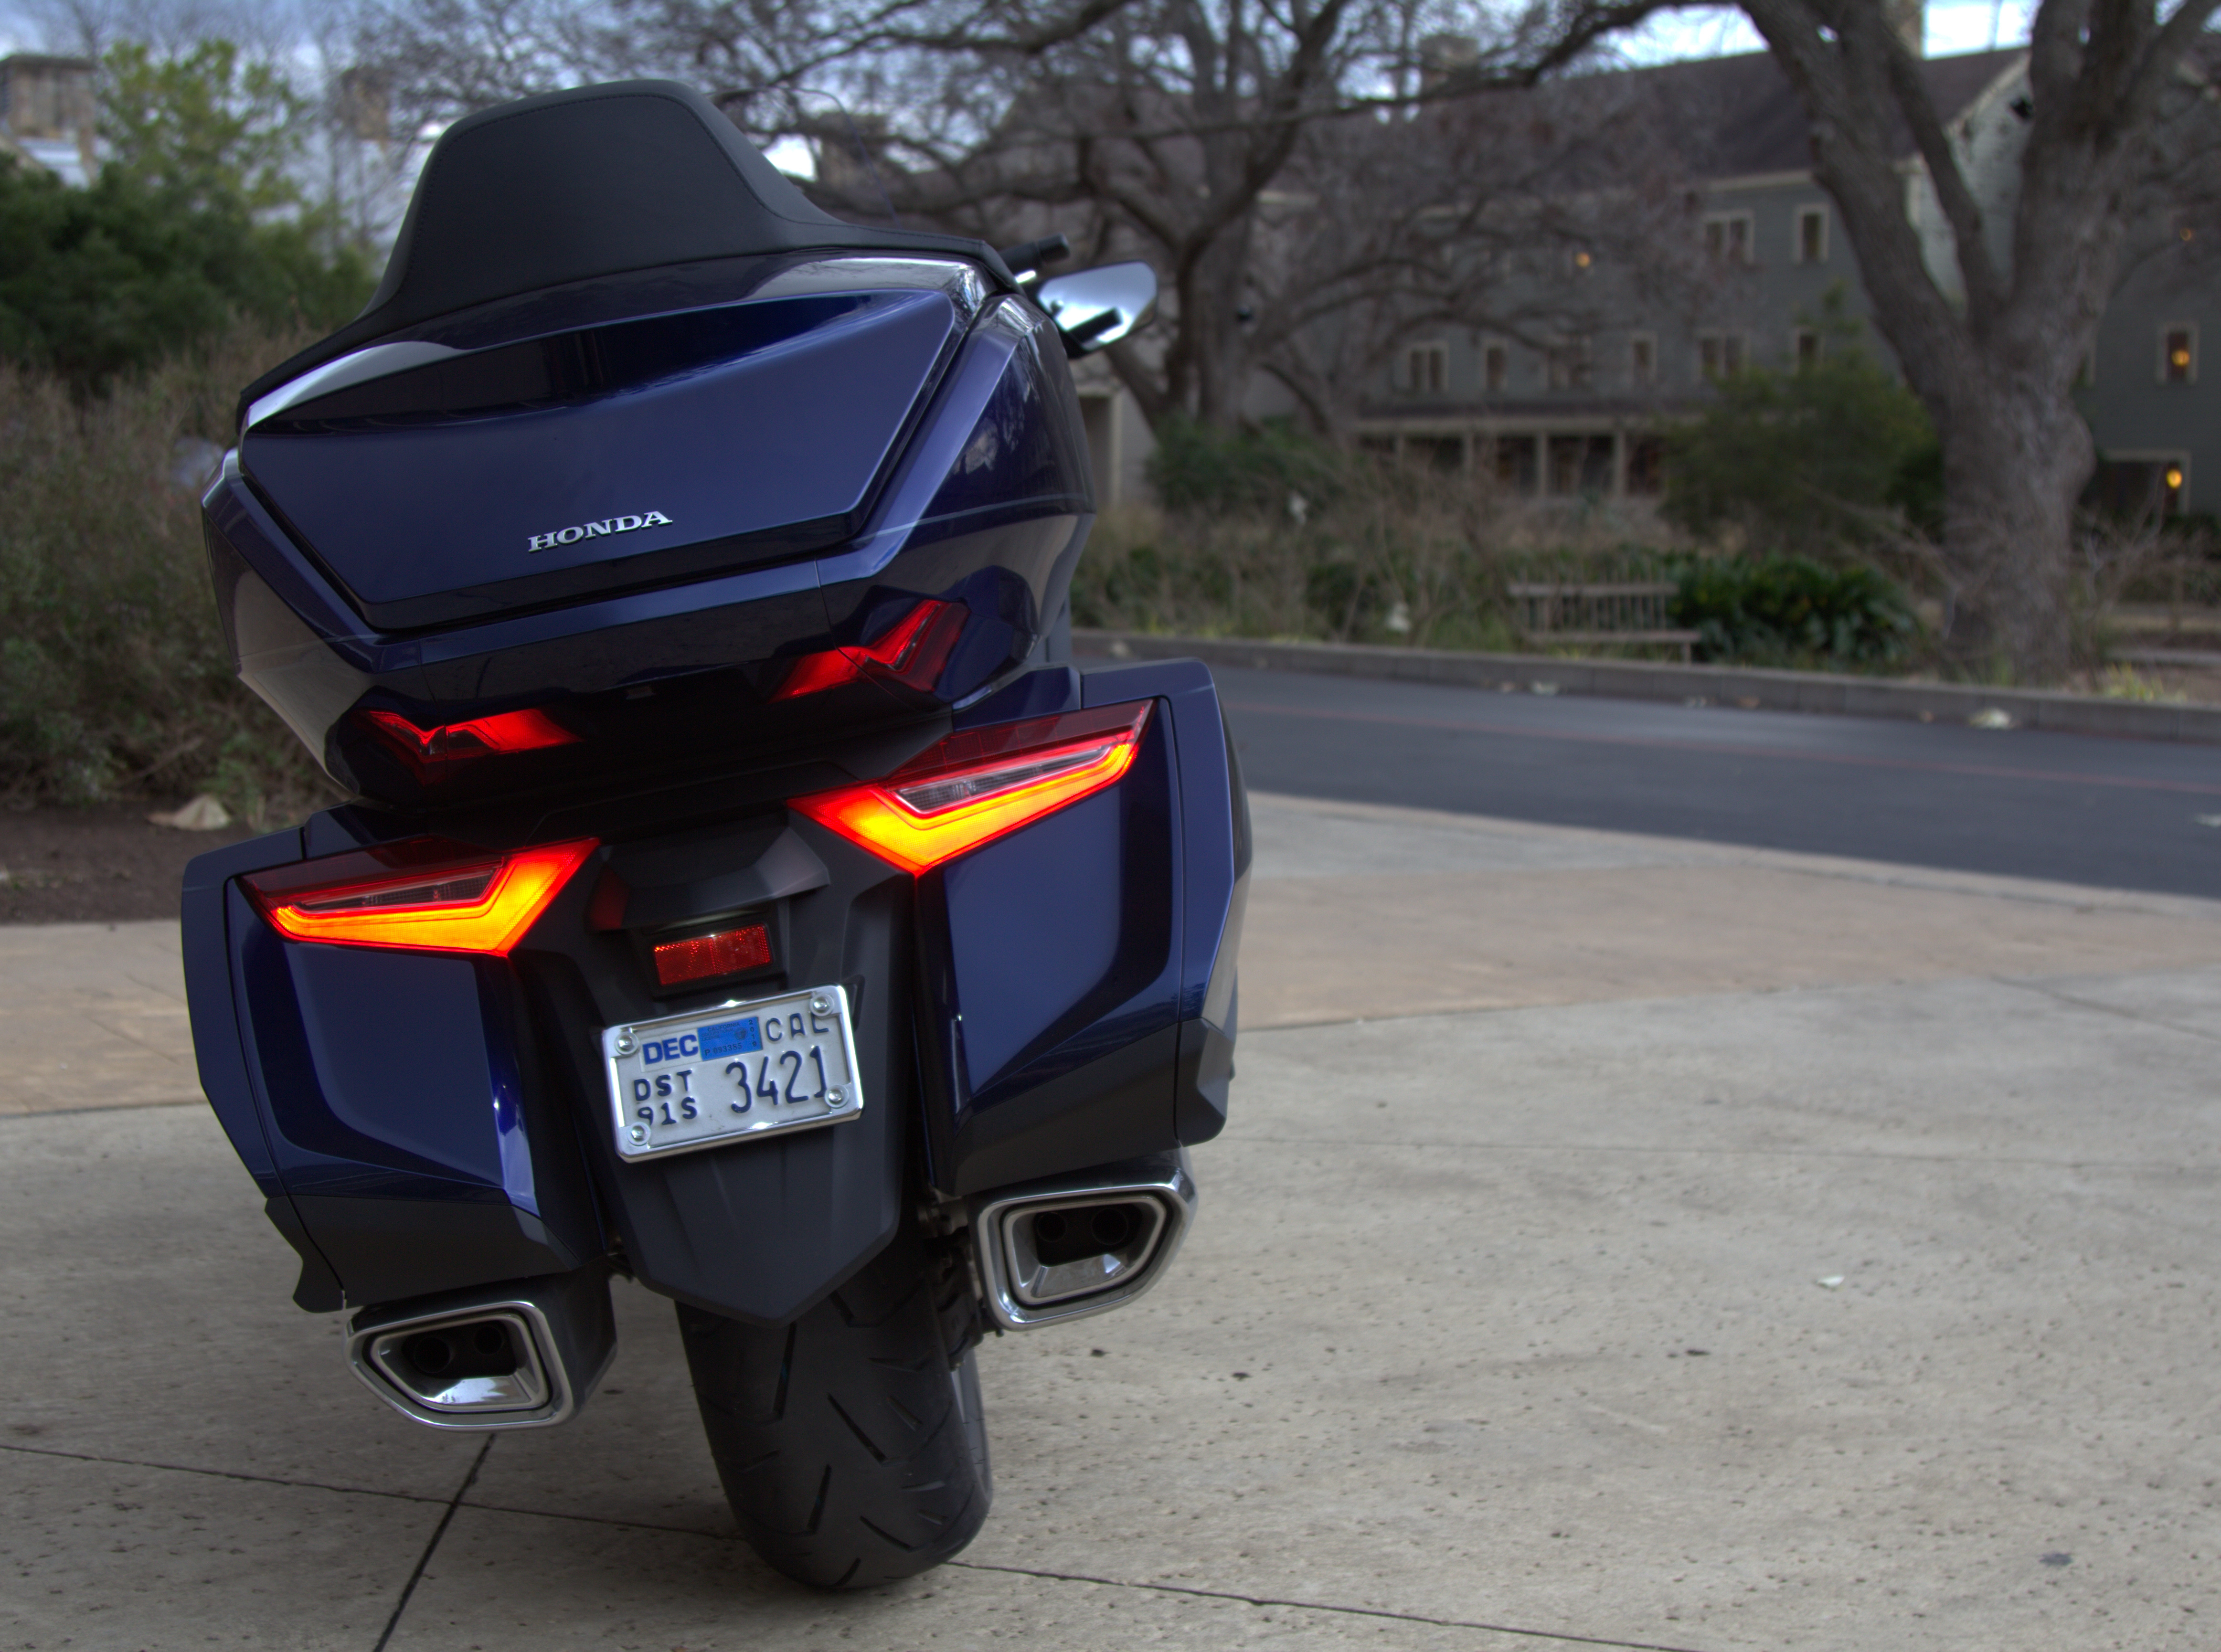 2018 honda gold wing tour first ride review revzilla fandeluxe Gallery